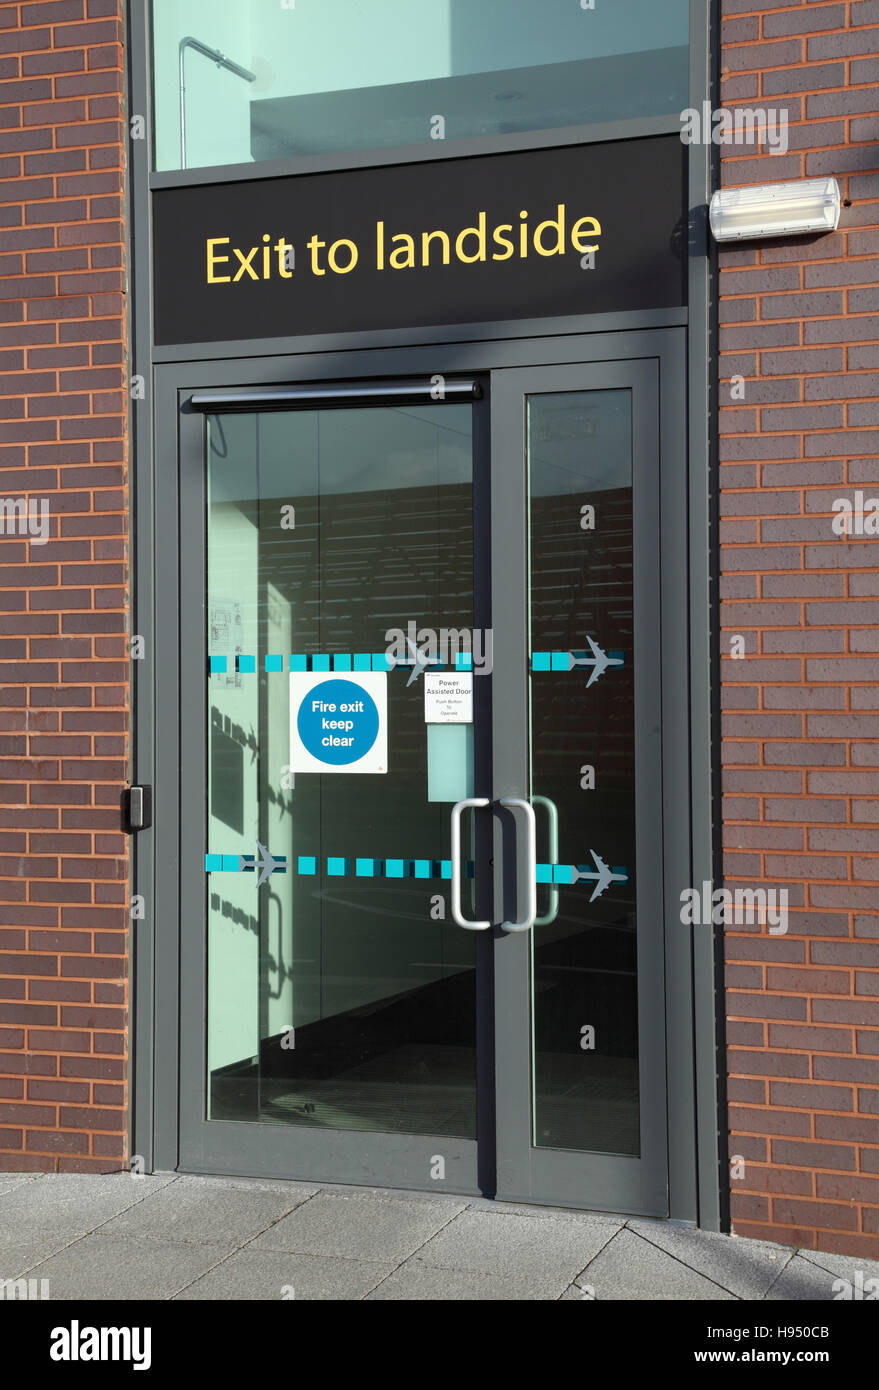 Staff exit from Airside to Landside areas at Gatwick Airport, UK. Large 'Exit to Landside' sign above door. - Stock Image